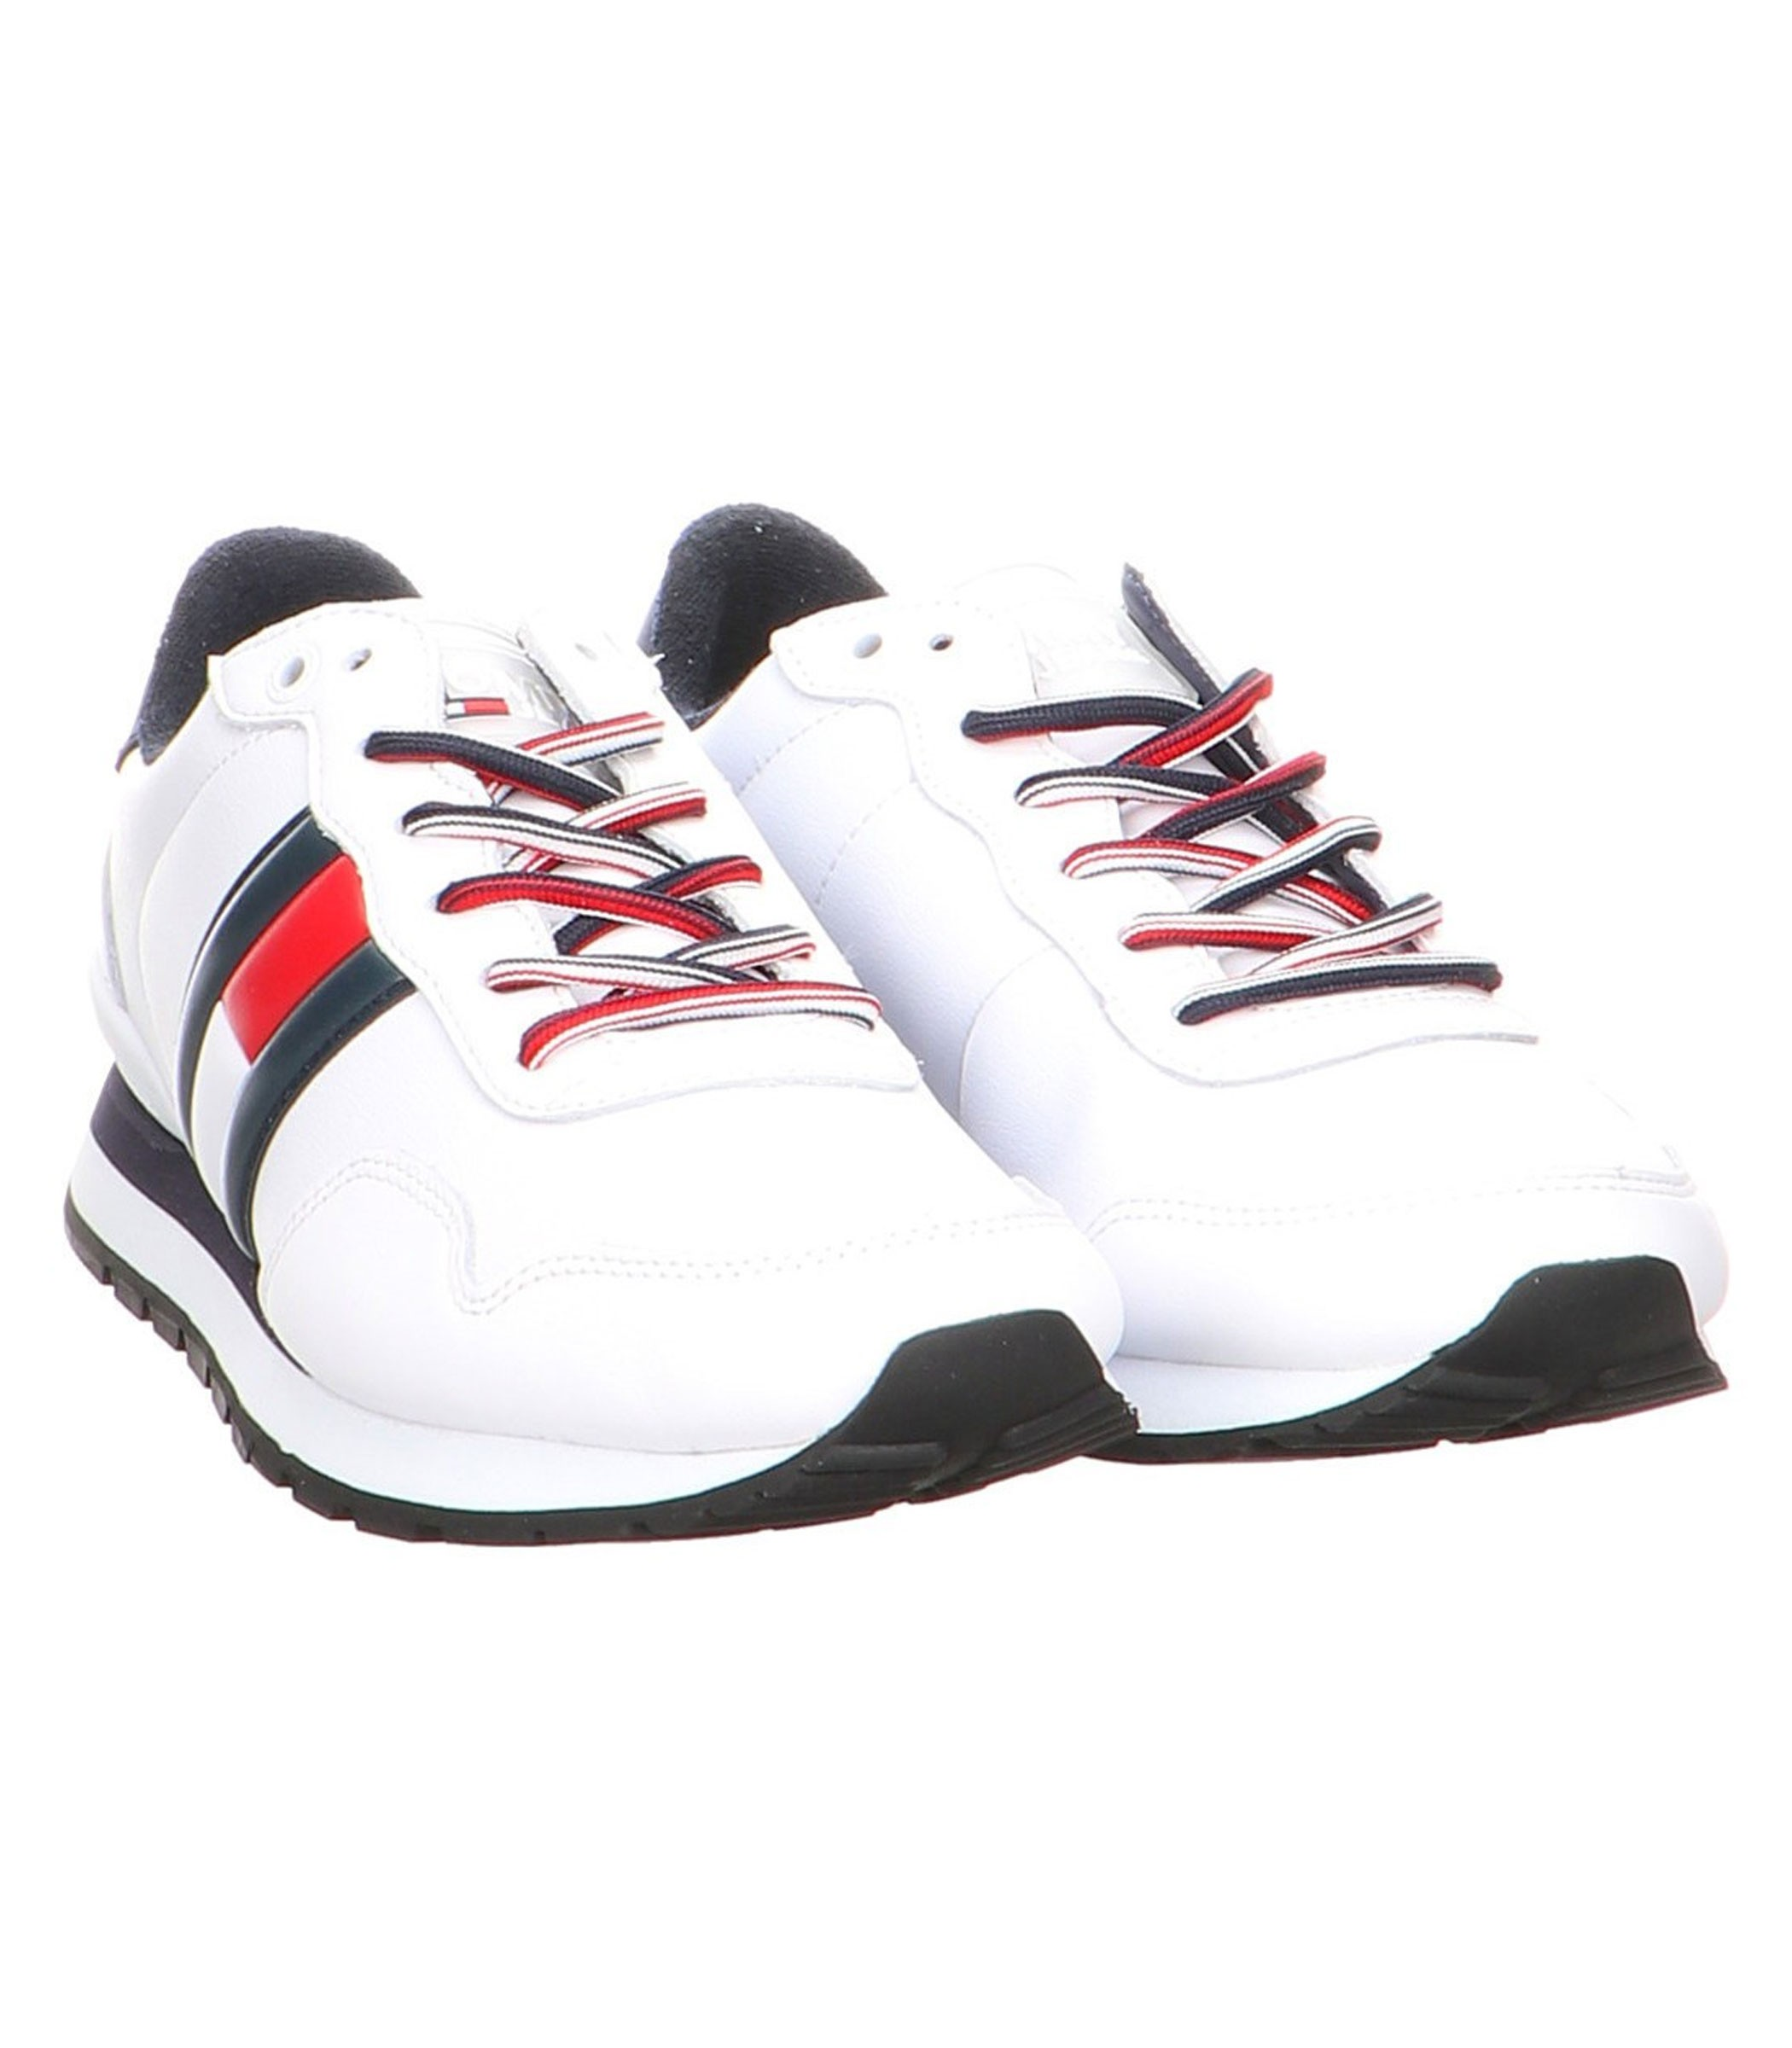 the latest 87d09 ab52f Scarpe Sneakers Tommy Hilfiger Leather in pelle da uomo rif ...